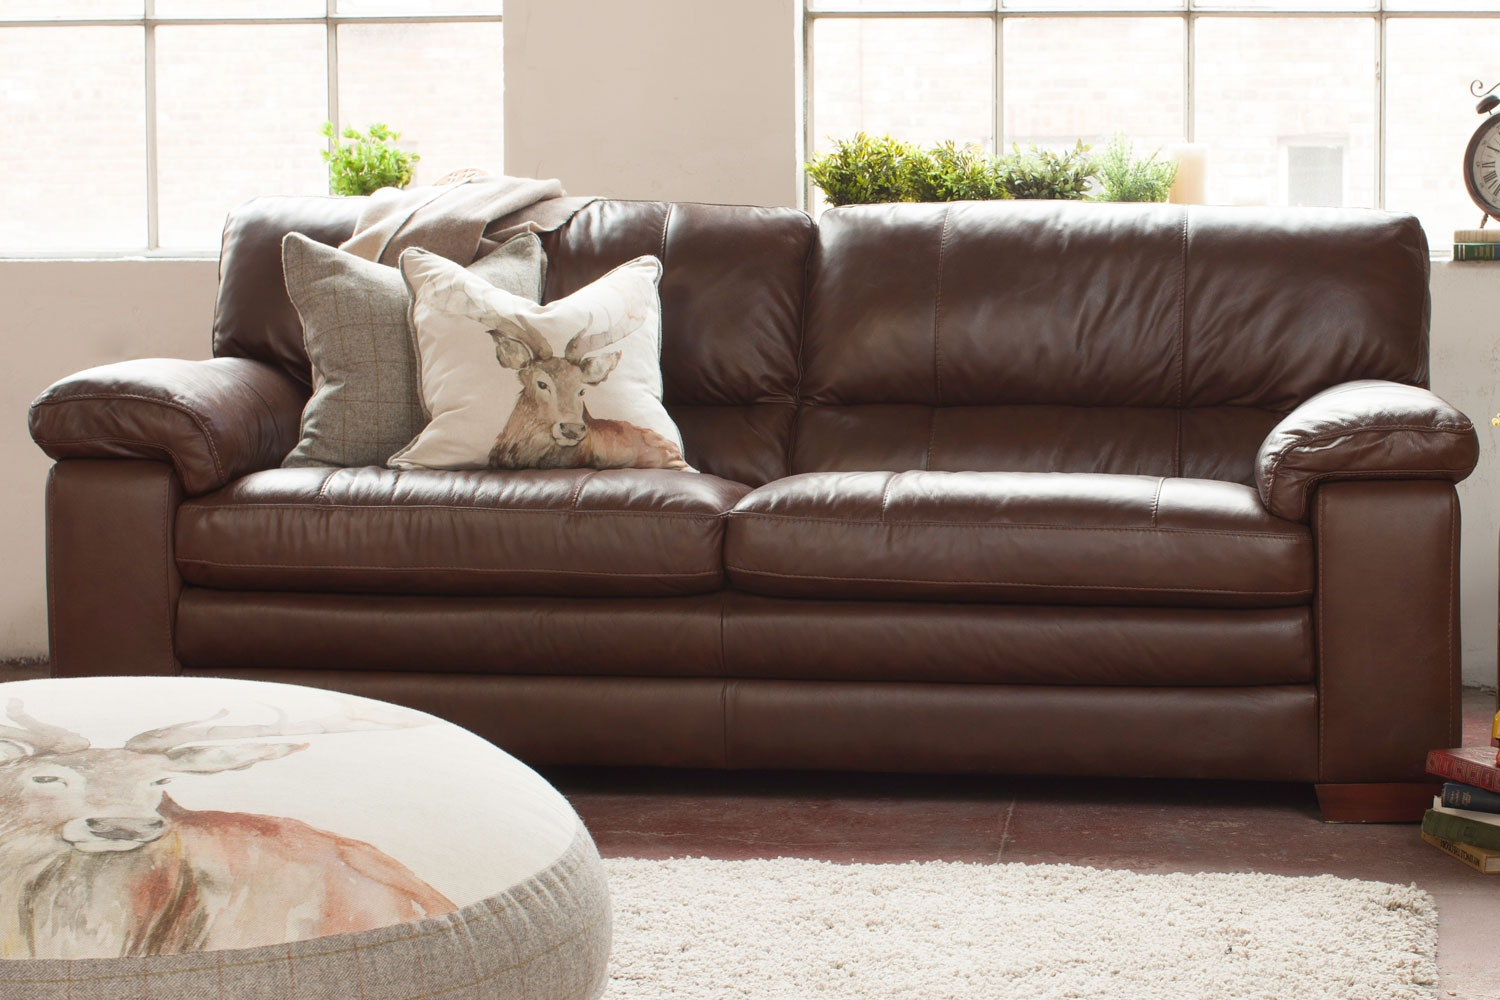 Lumina 3 Seater Leather Sofa